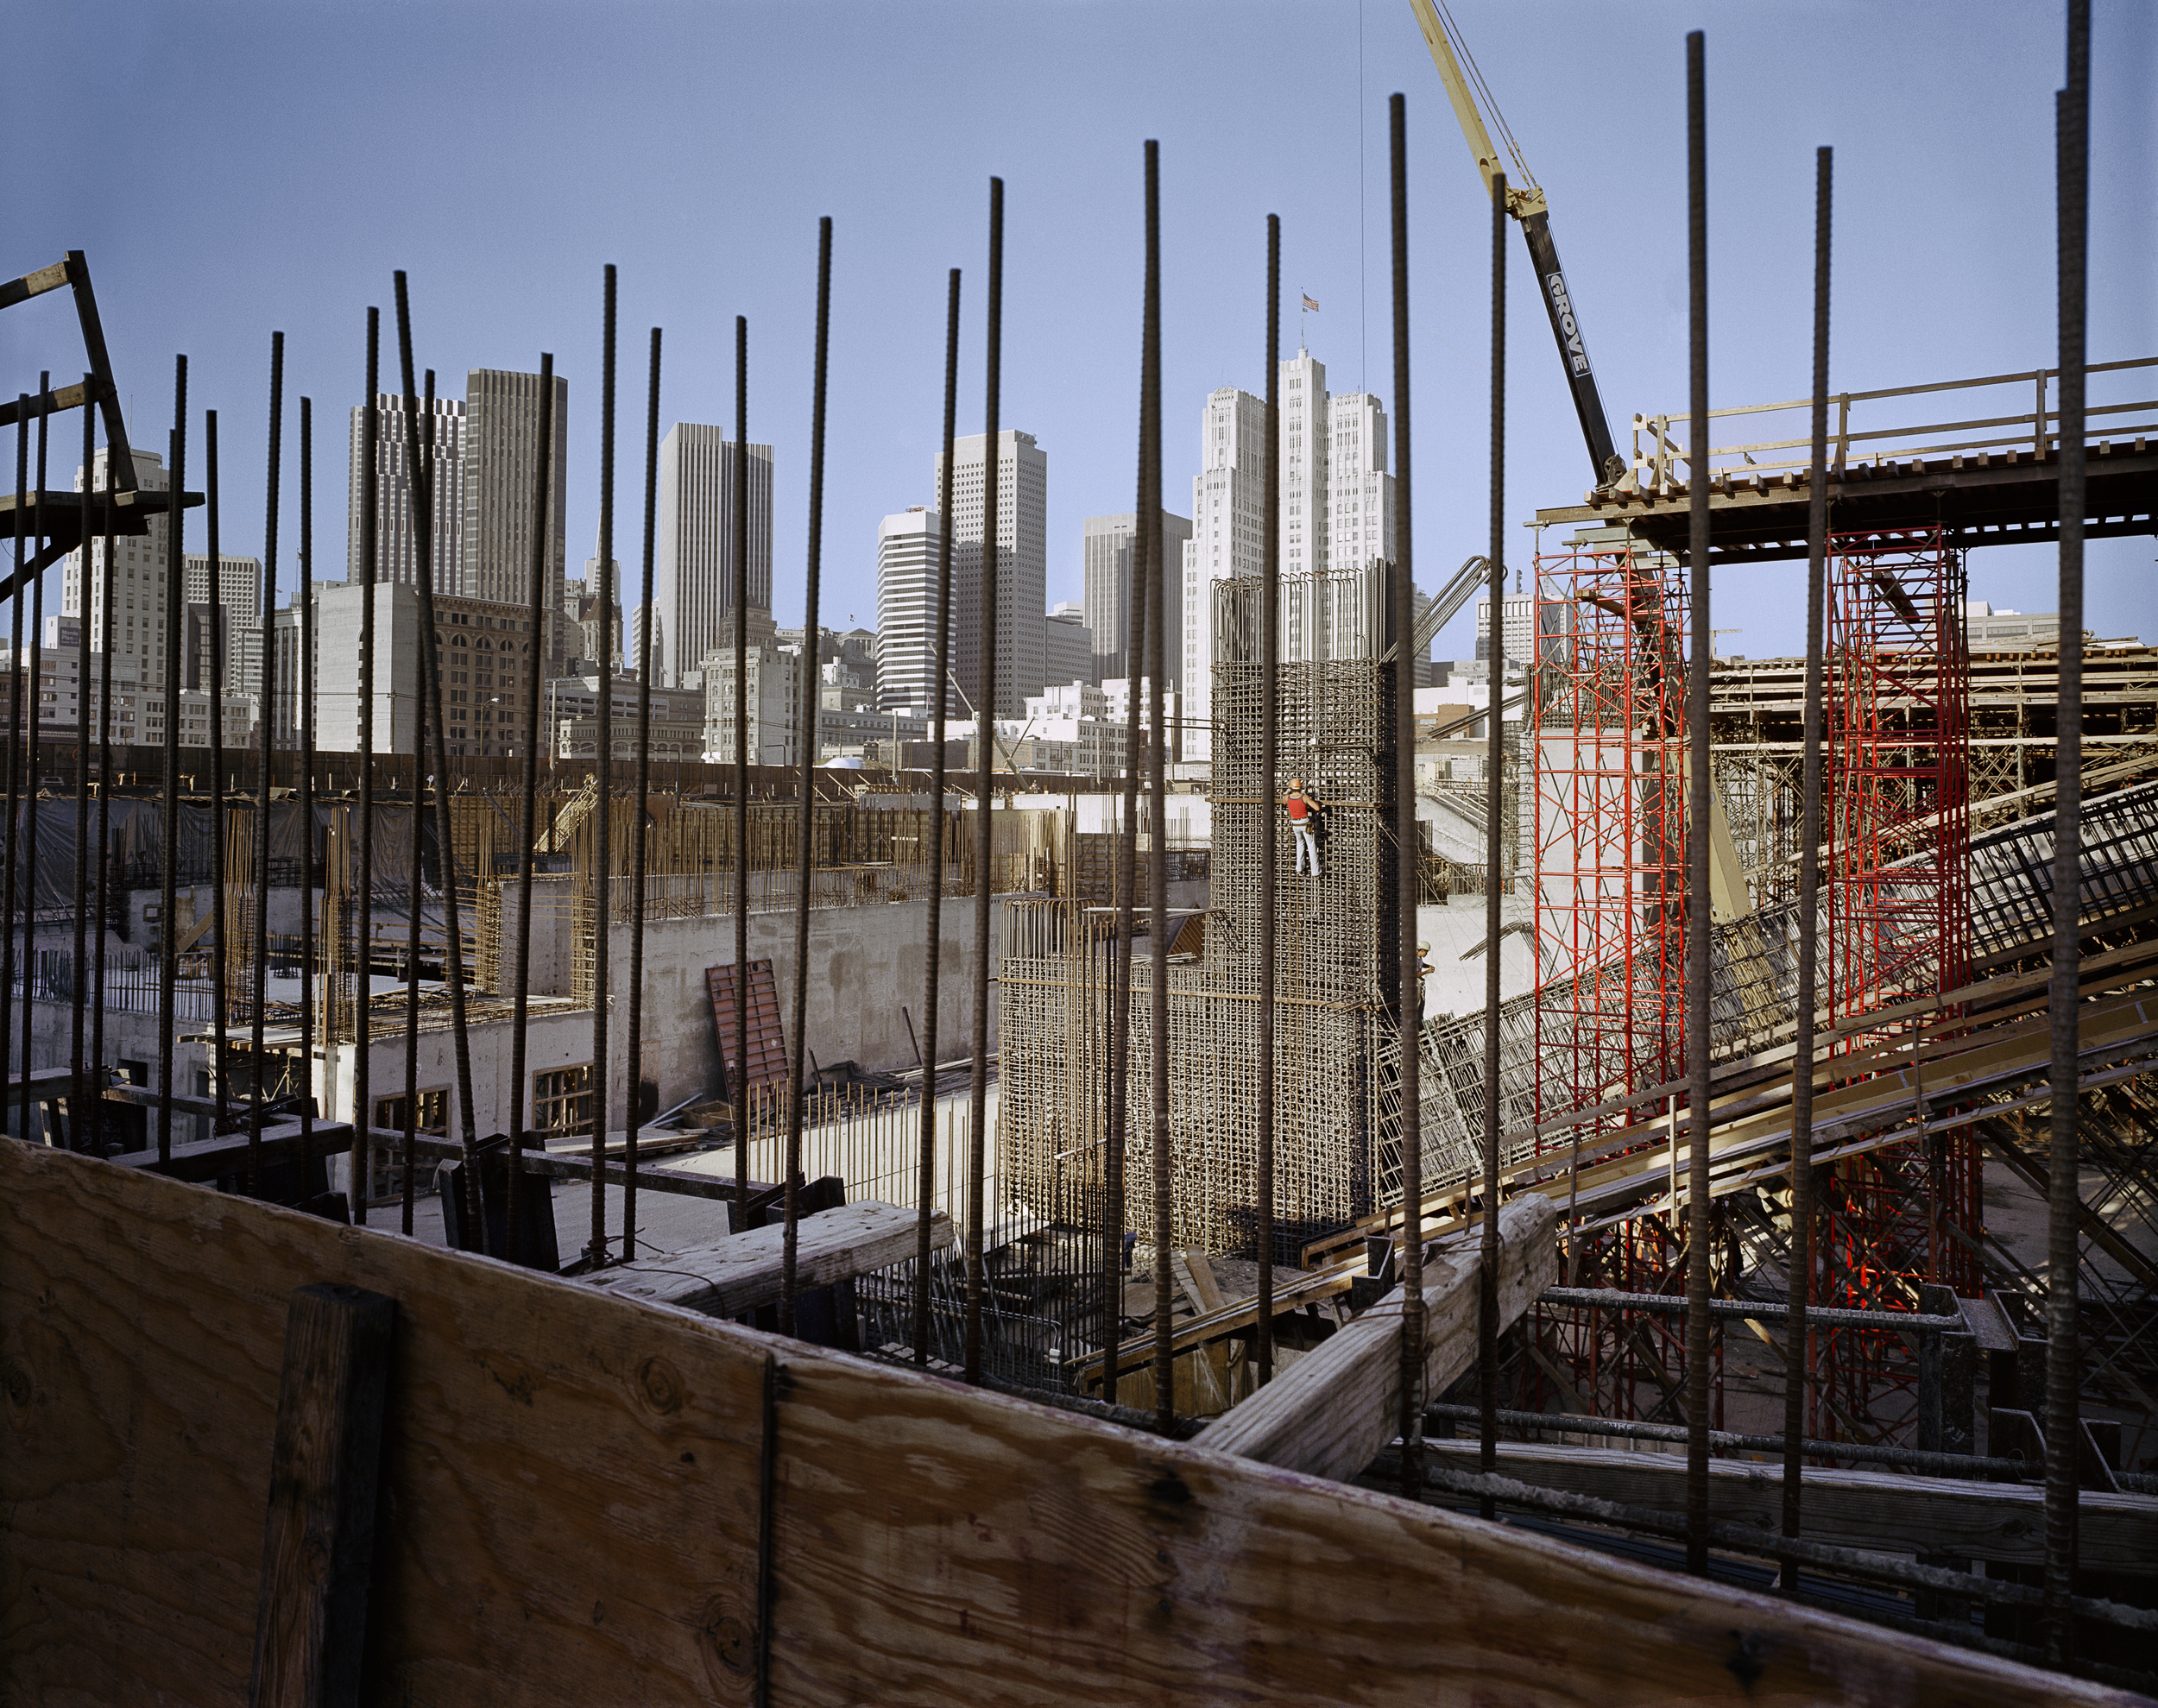 Moscone Center under construction, 1980 Archival Pigment Print, 2016 16 x 20 inches, edition of 5 20 x 24 inches, edition of 2 30 x 40 inches, edition of 2